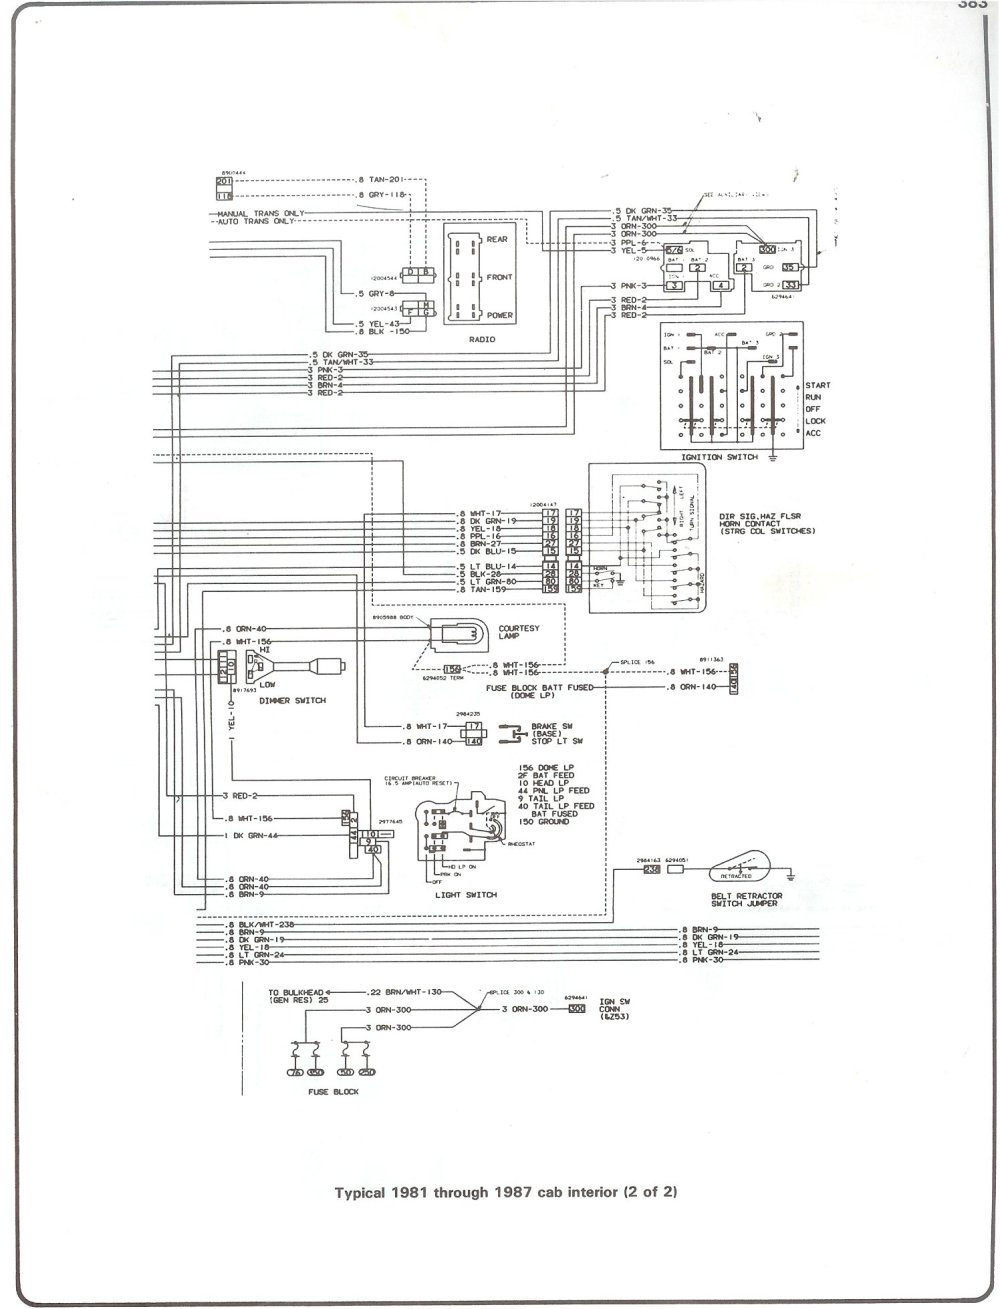 medium resolution of complete 73 87 wiring diagrams 1987 chevrolet s10 blazer 81 87 cab interior page 2